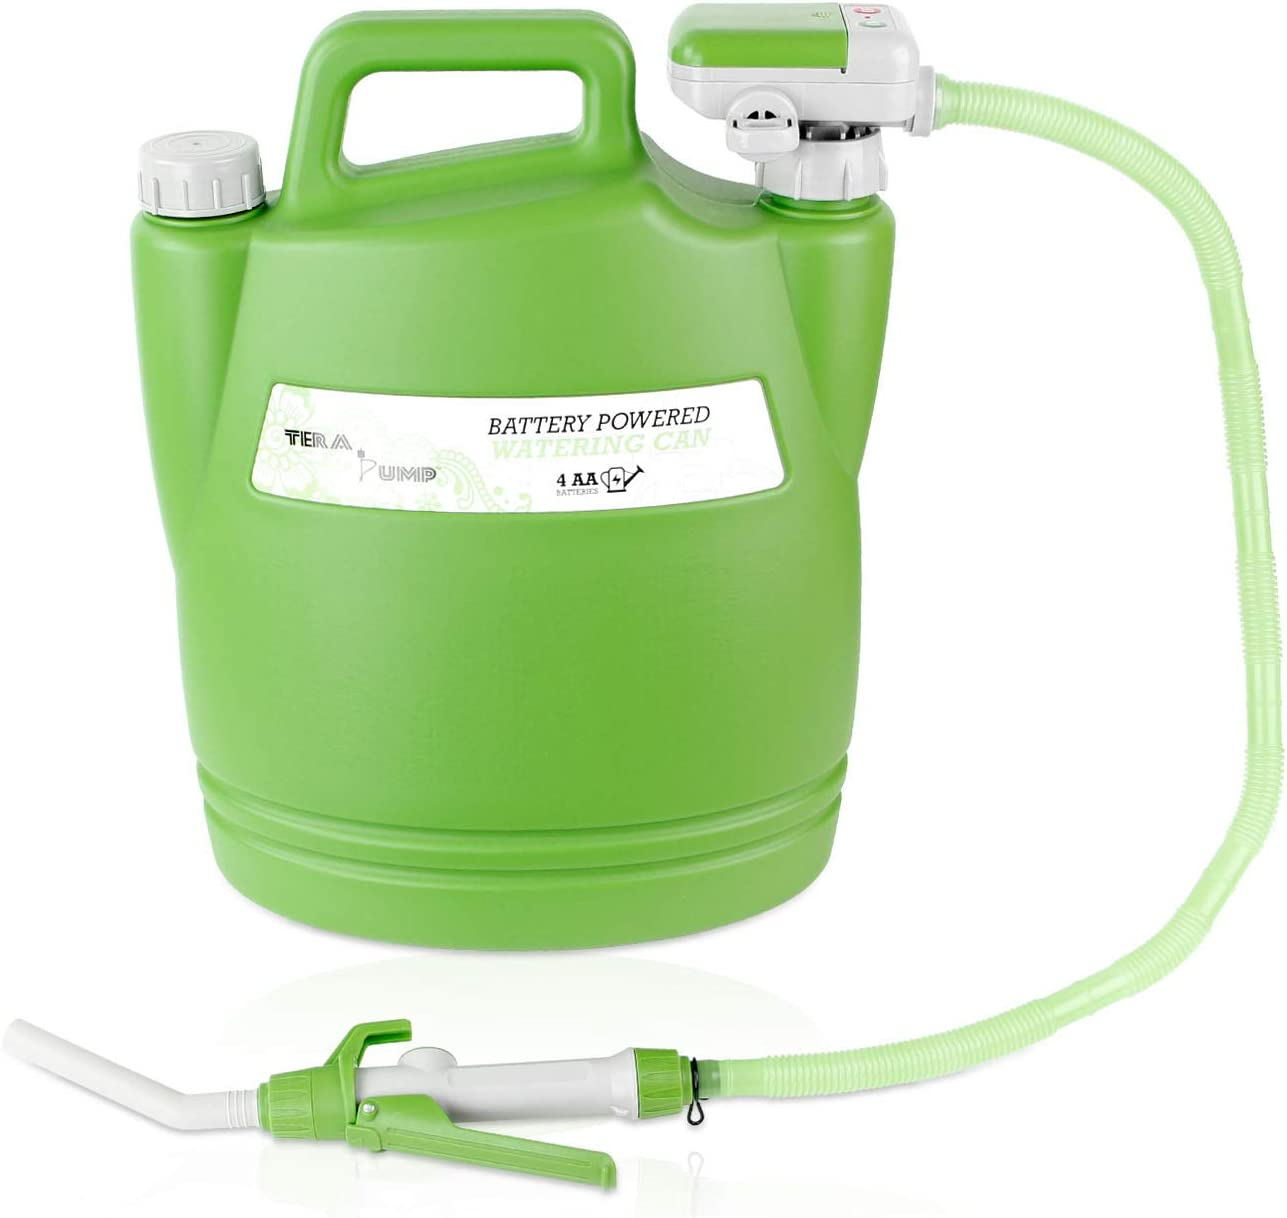 TERA PUMP 1st Introducing Deluxe Plastic Easy Pour AUTO Electric Watering Can 3.8 Gallon per min, 2.5 Feet Long Hose, Green Light Color